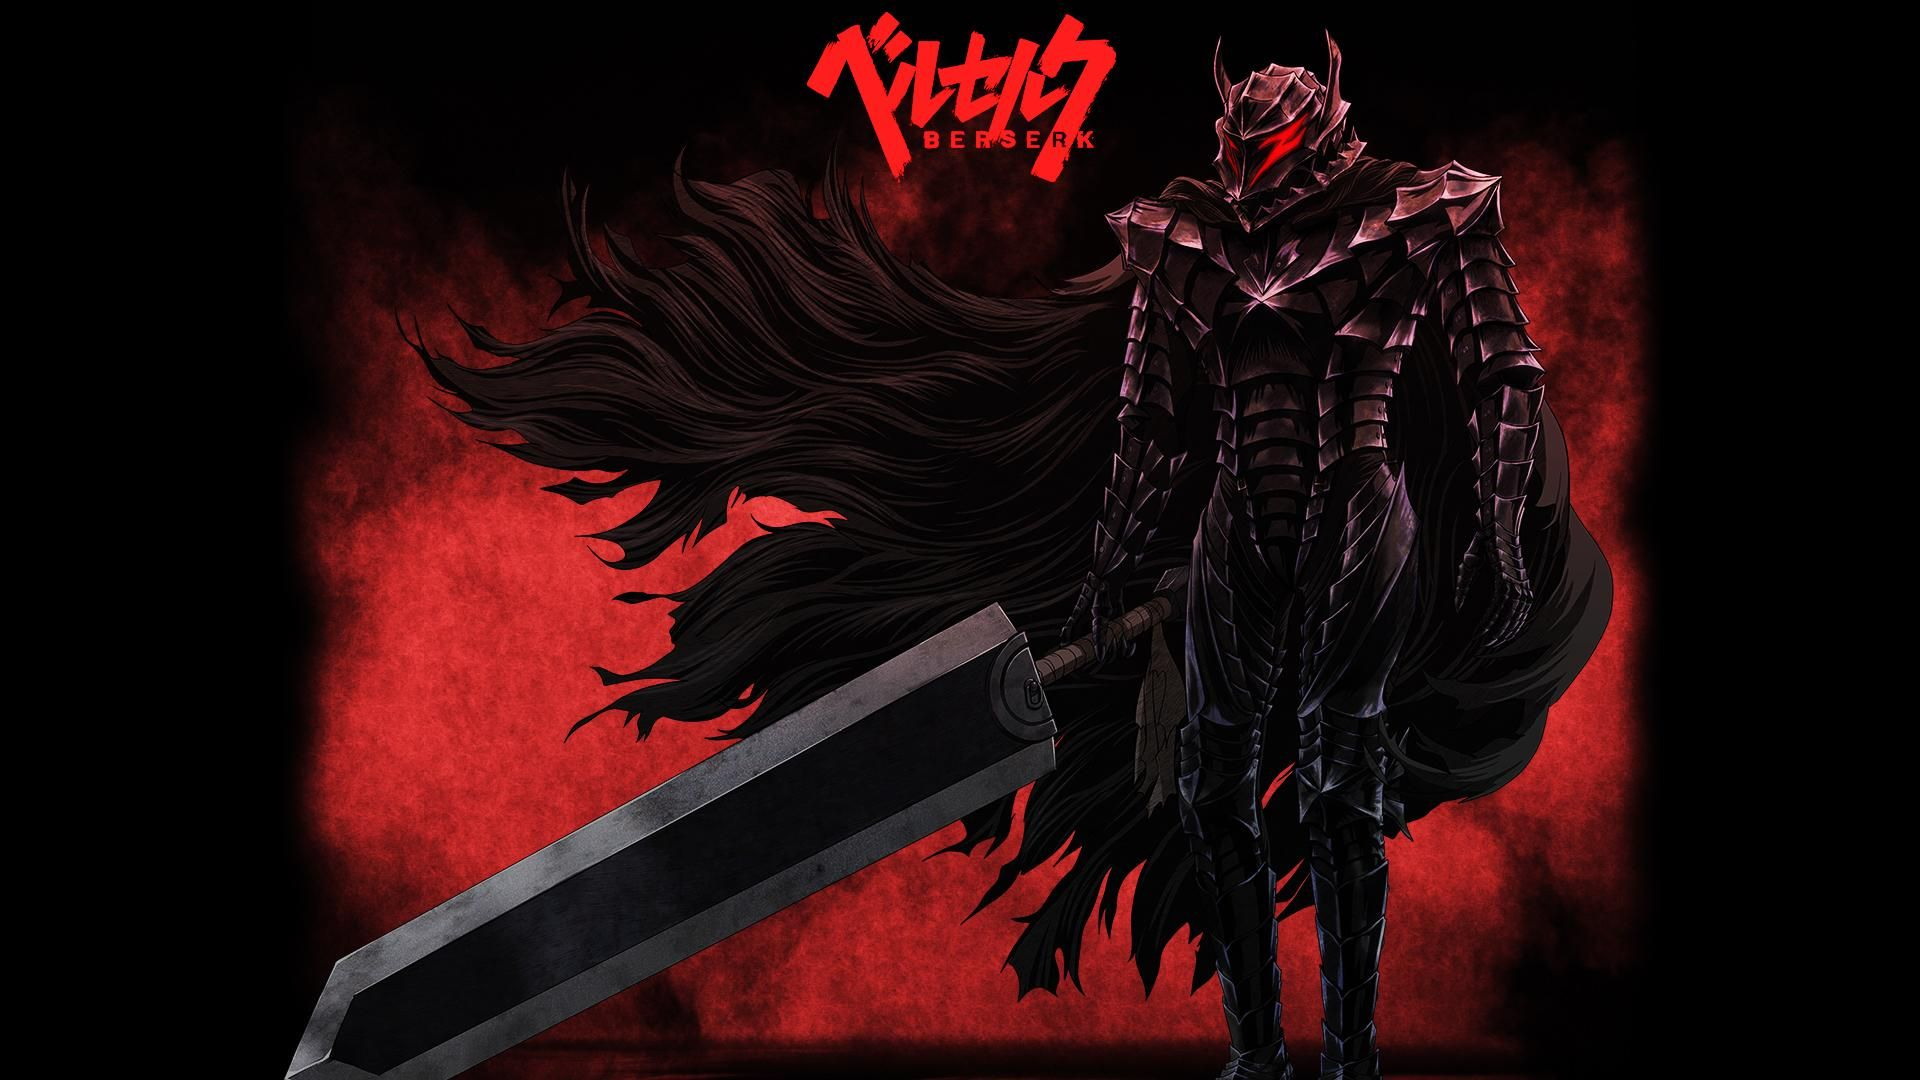 Berserk 2017 Berserker Armor Wallpaper 1920x1080 (Fixed